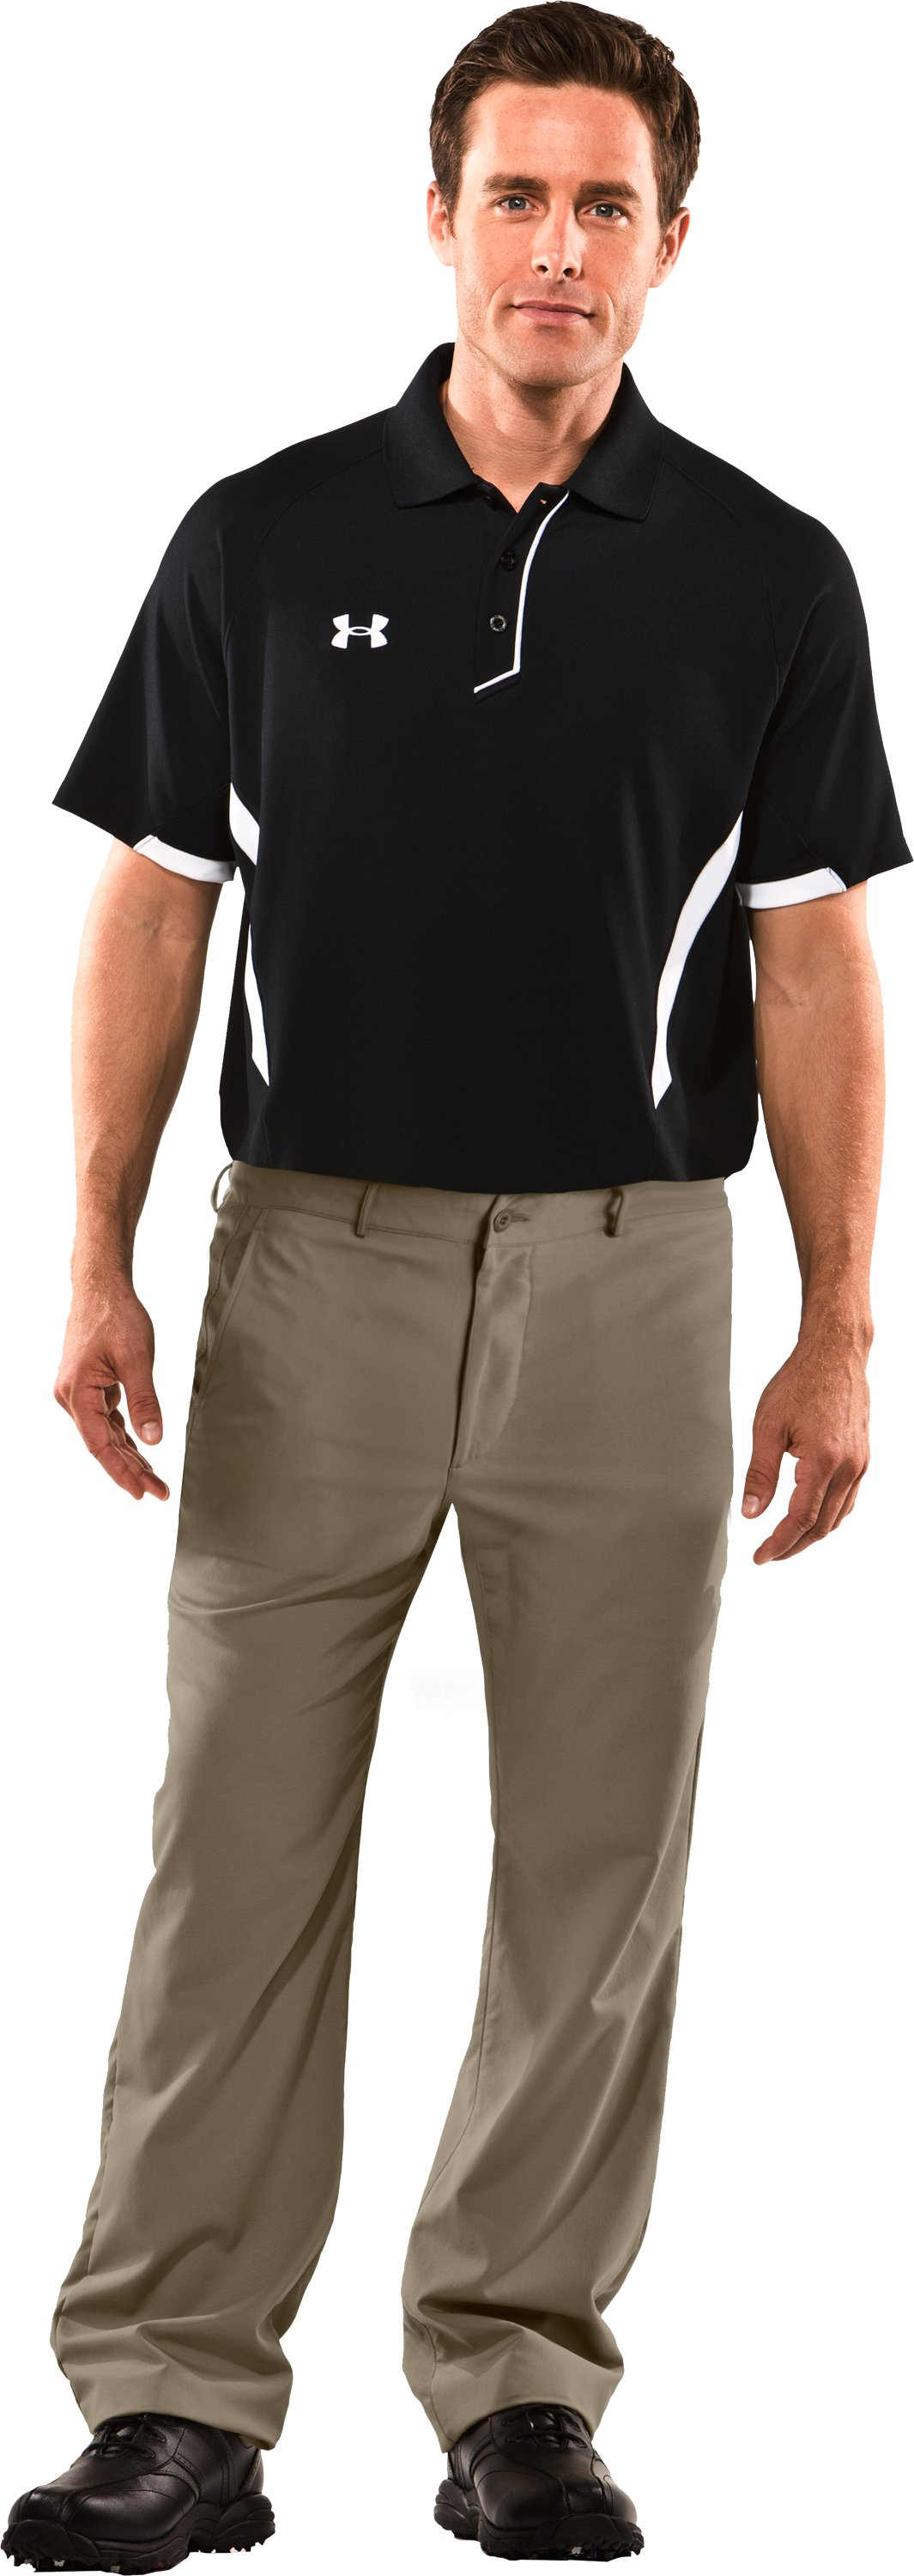 Men's Performance Flat Front Pants, Dune, zoomed image